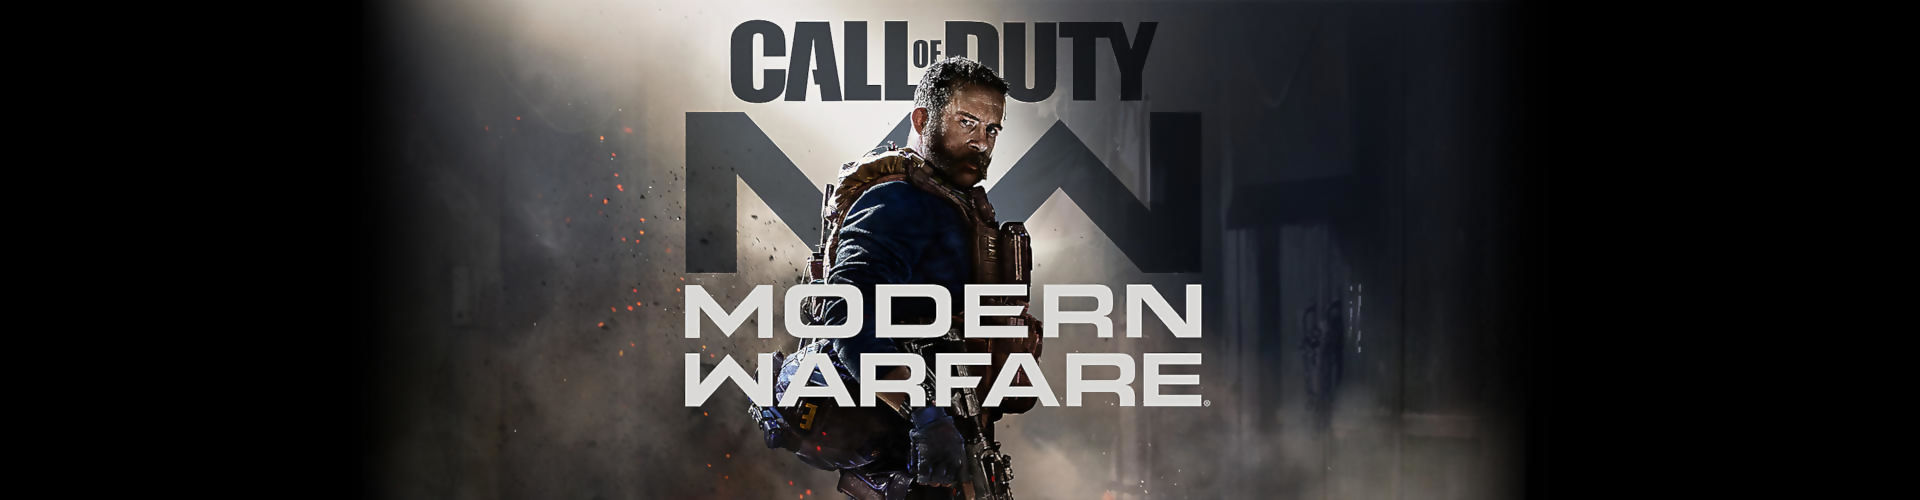 Call of Duty: Modern Warfare - All the reviews and the European average score